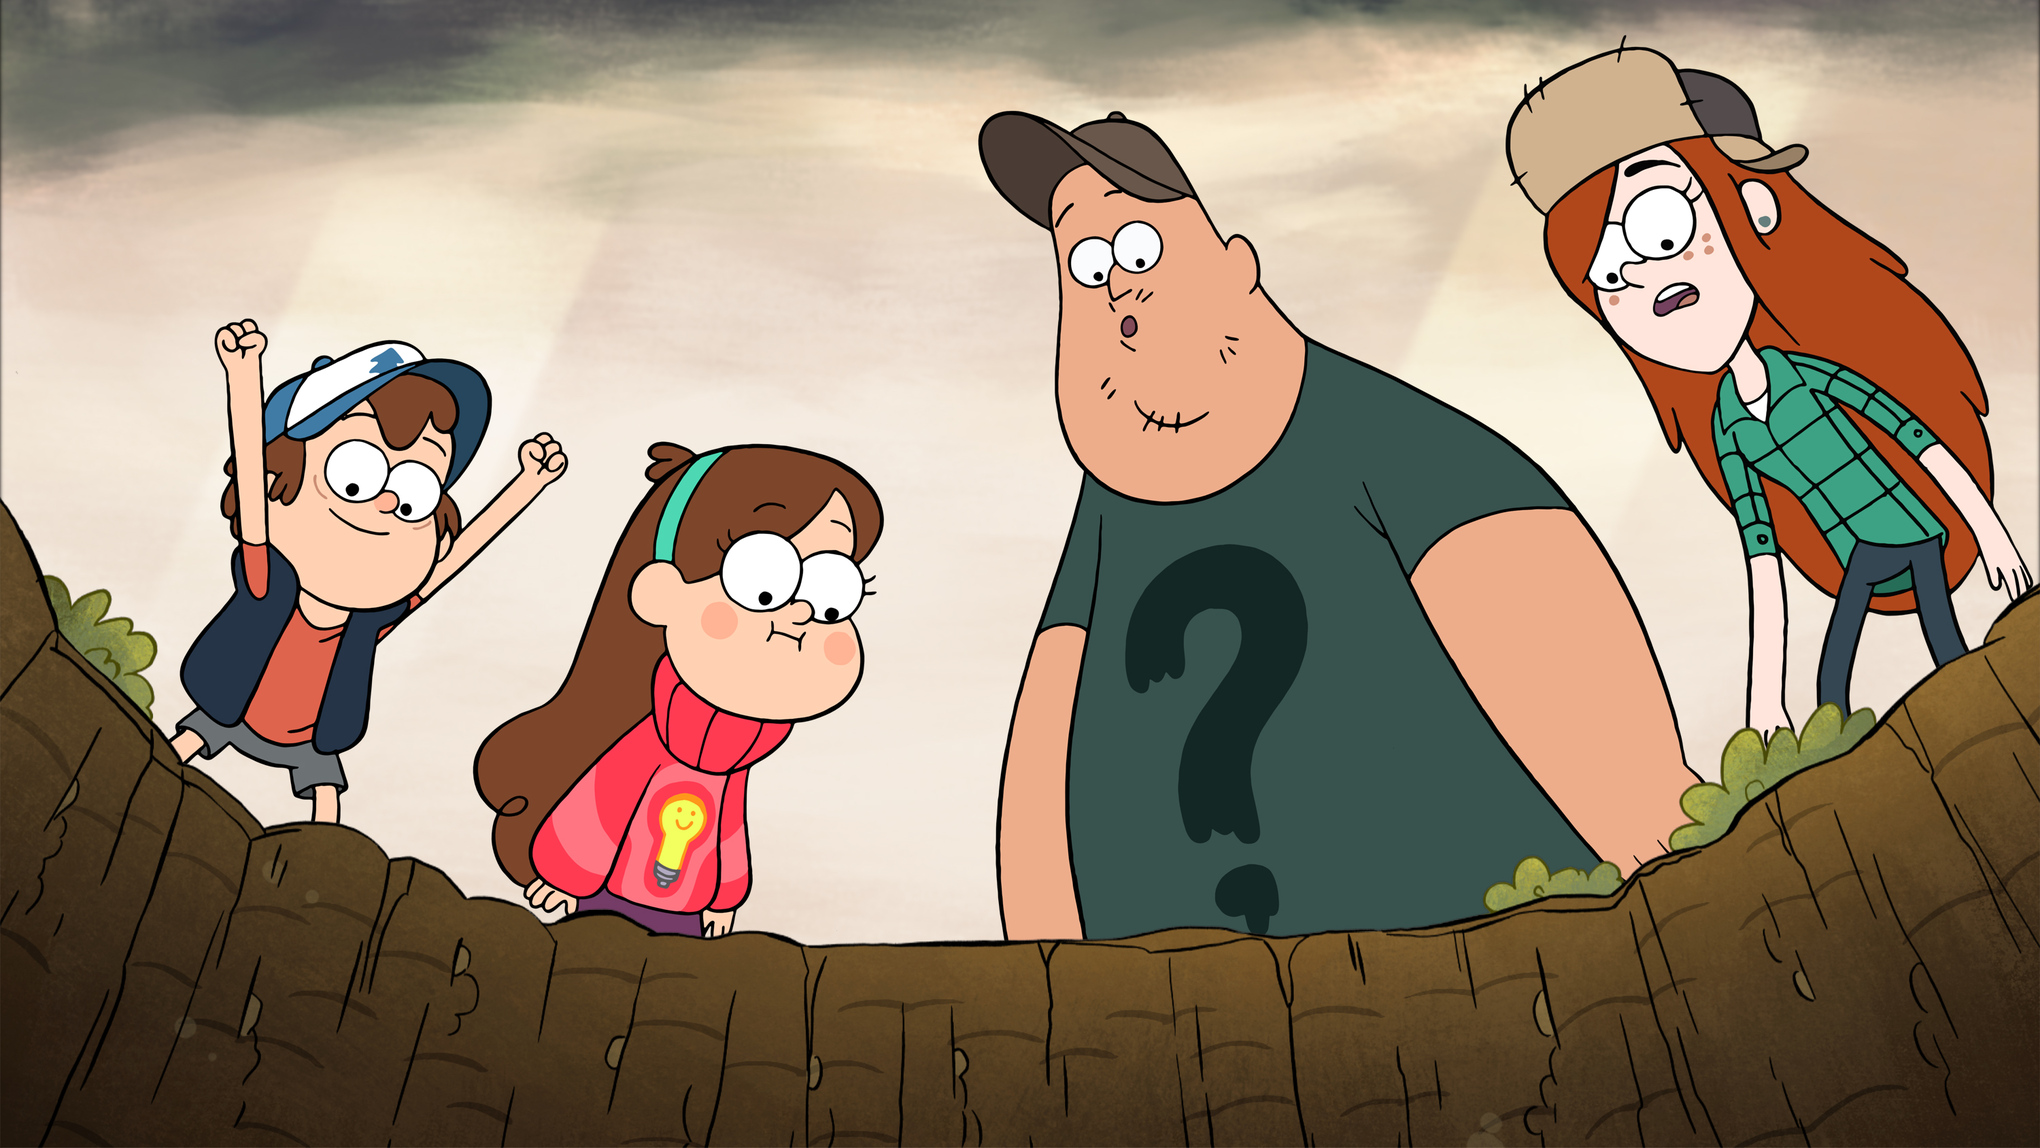 Gravity Falls Characters Wallpaper 2048x1152 Disney S Gravity Falls Is One Of The Best Kids Shows On Tv